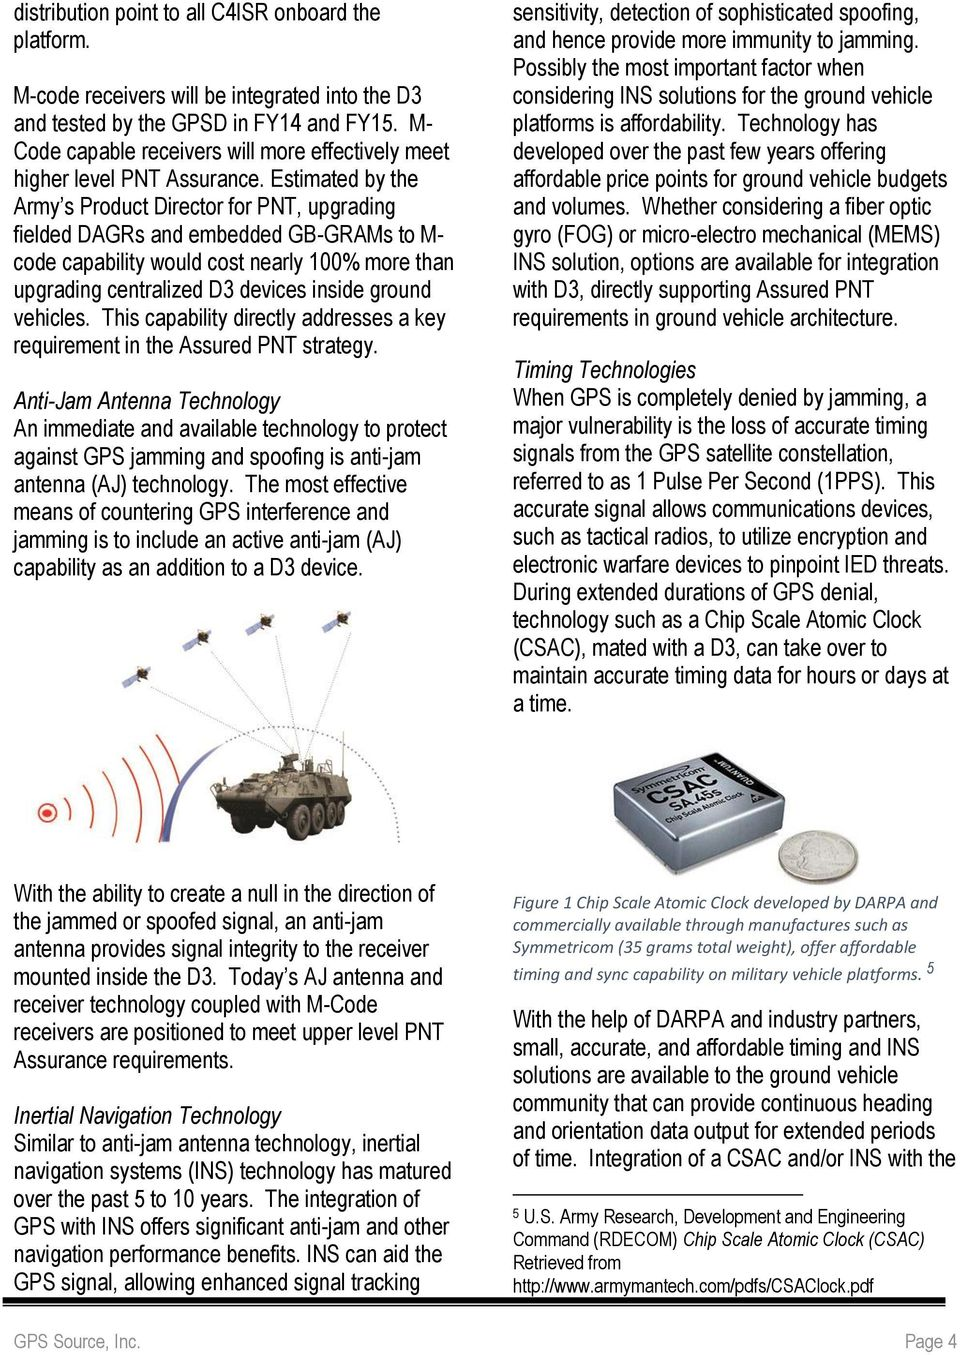 Estimated by the Army s Product Director for PNT, upgrading fielded DAGRs and embedded GB-GRAMs to M- code capability would cost nearly 100% more than upgrading centralized D3 devices inside ground